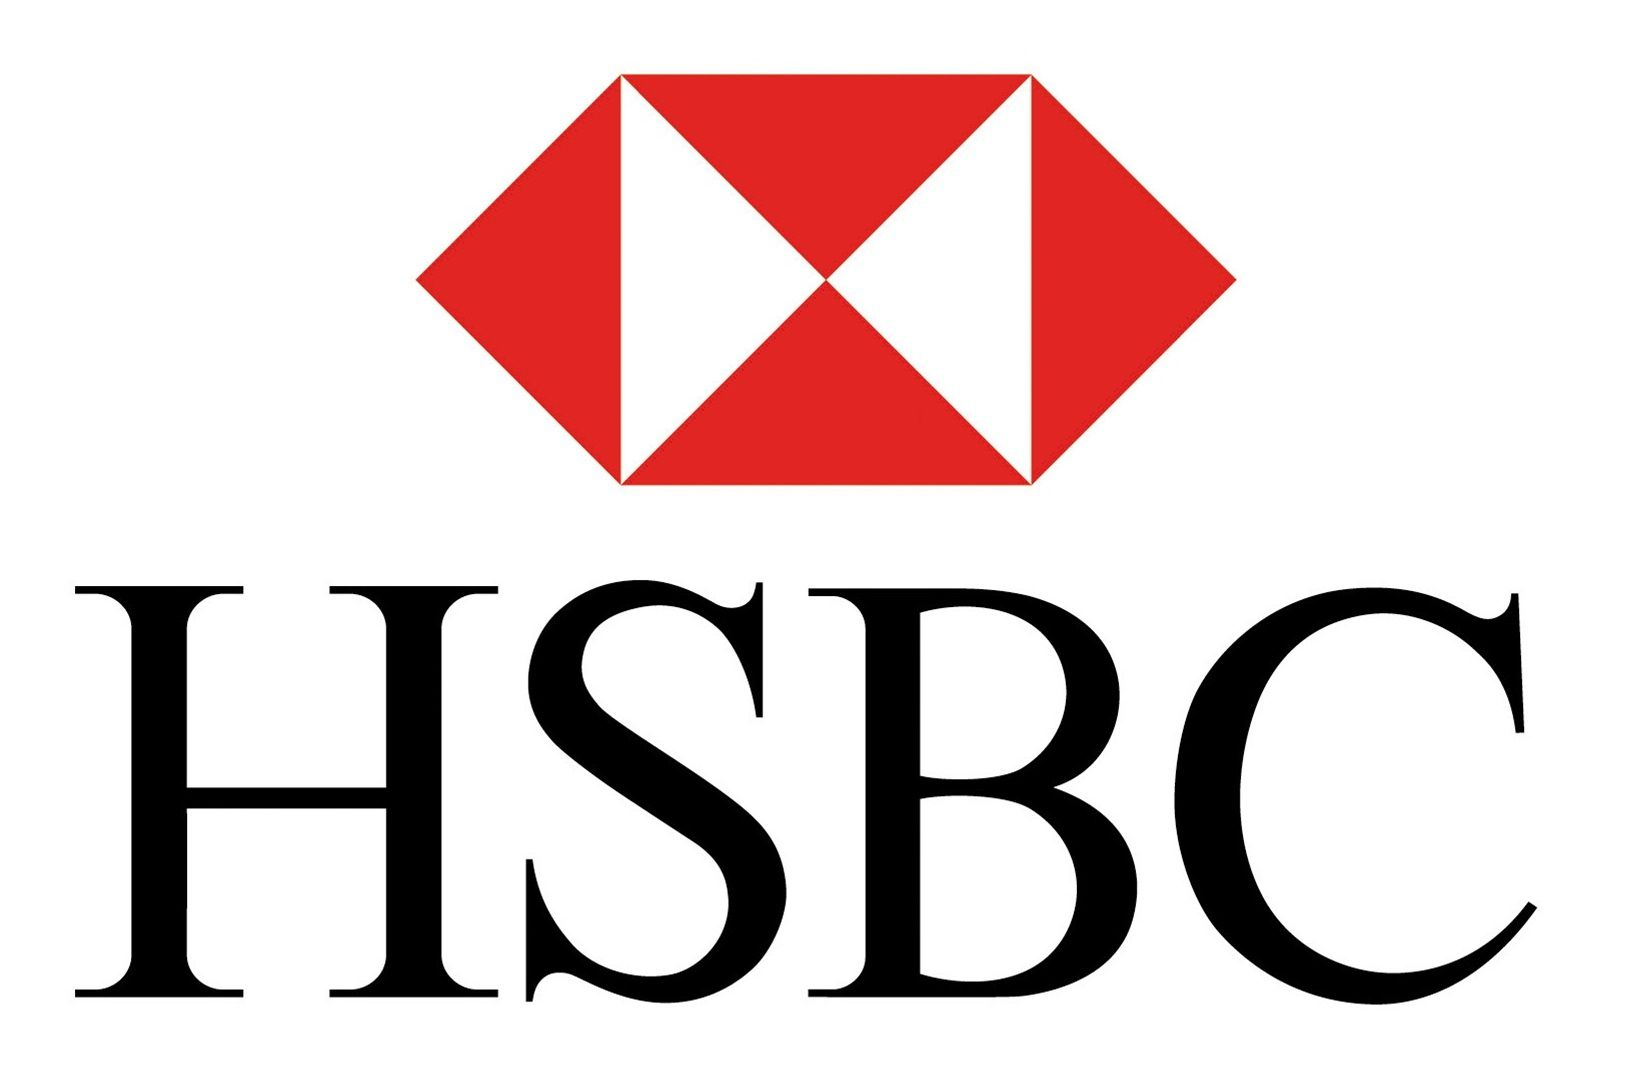 HSBC money transfer just requires you to have an account and